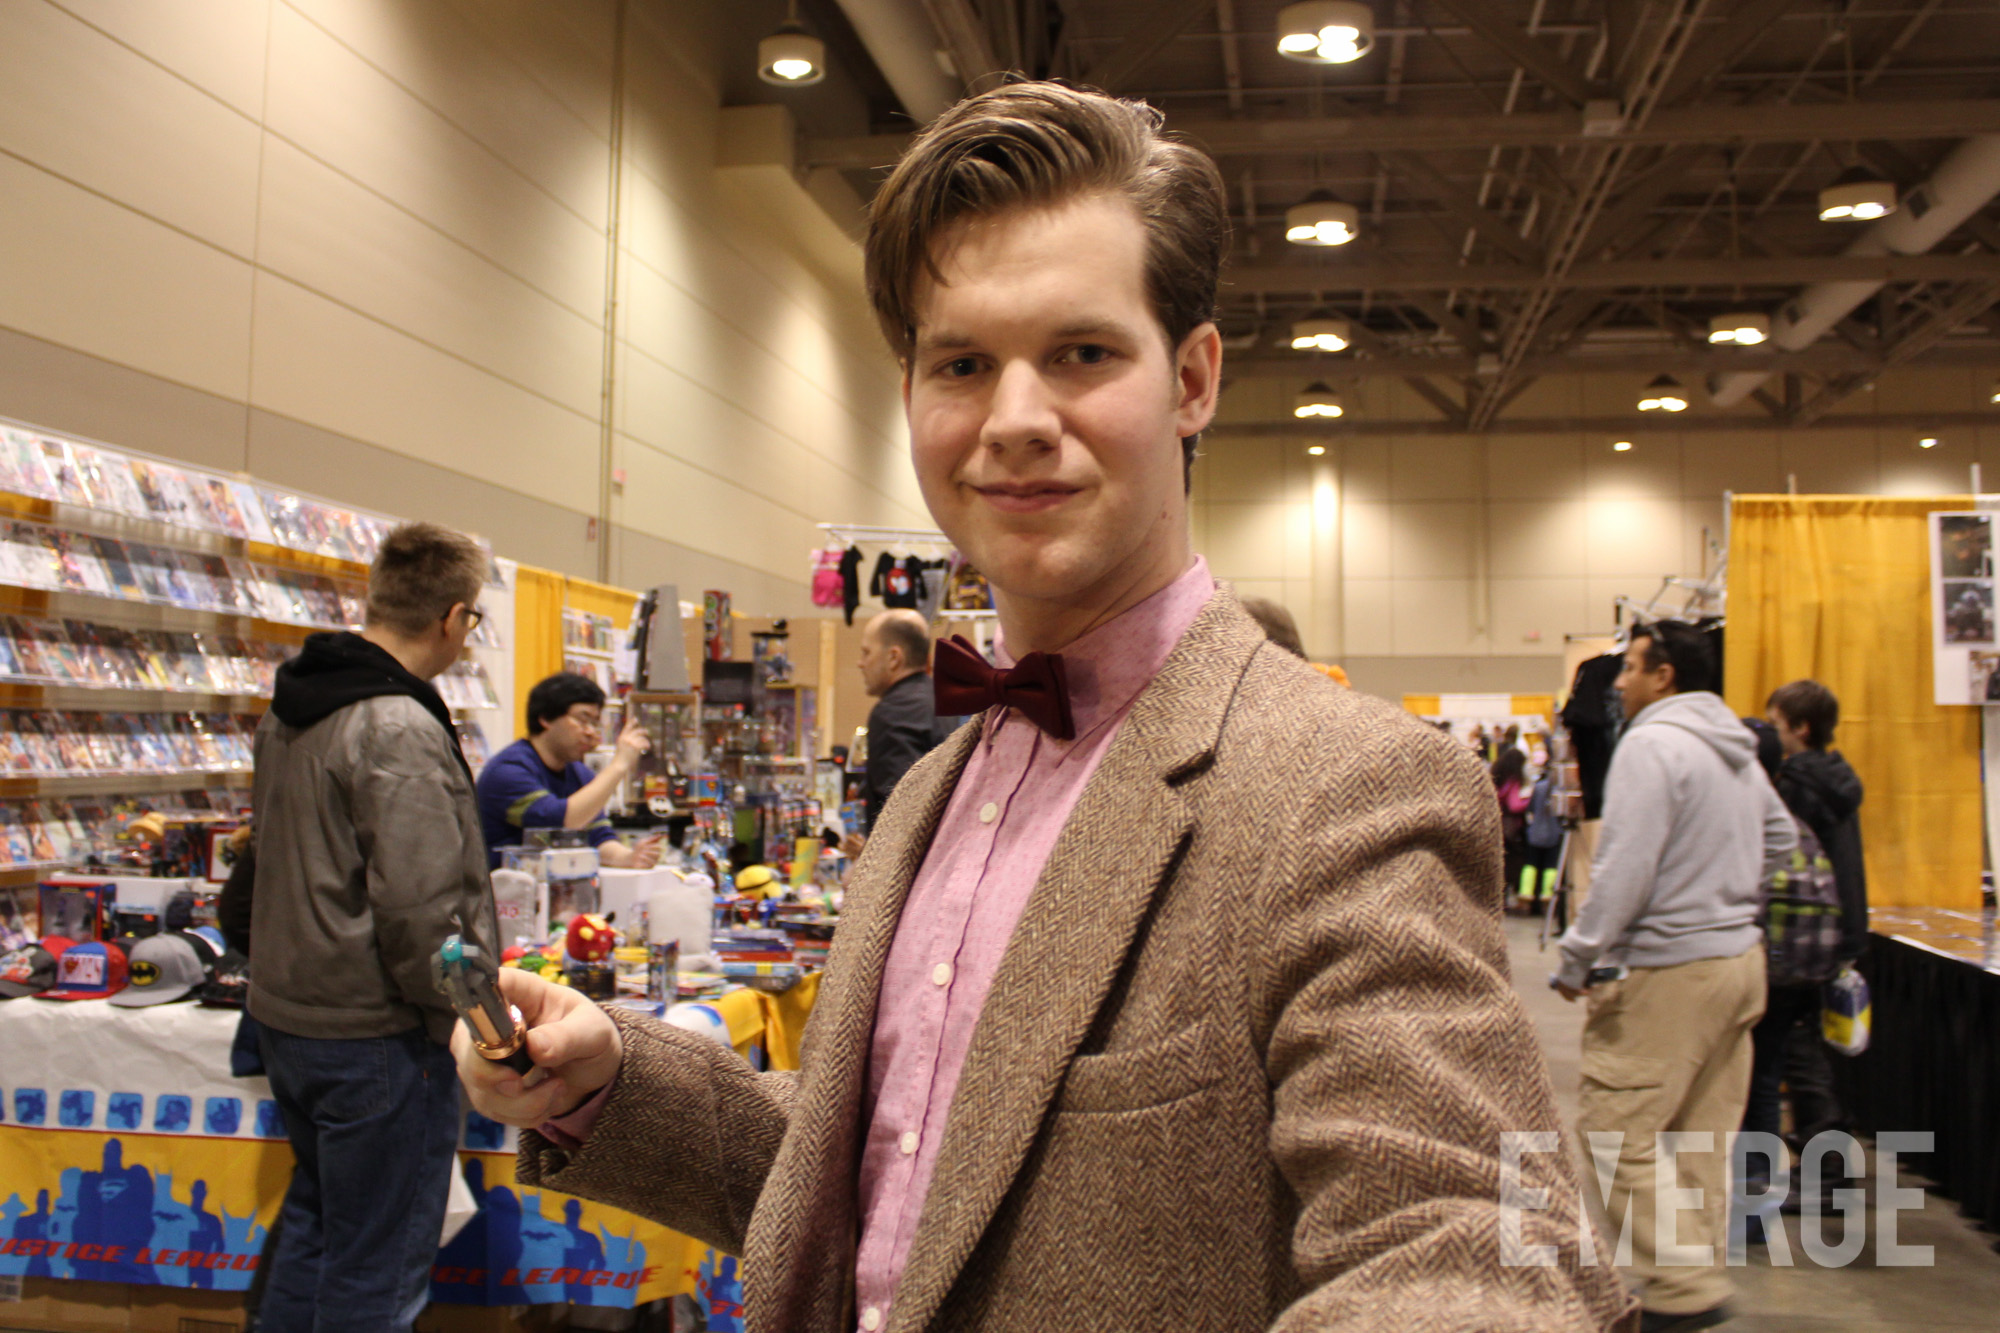 A dapper representation of Matt Smith's 11th Doctor (or is it 12th? 13th?) from Doctor Who.